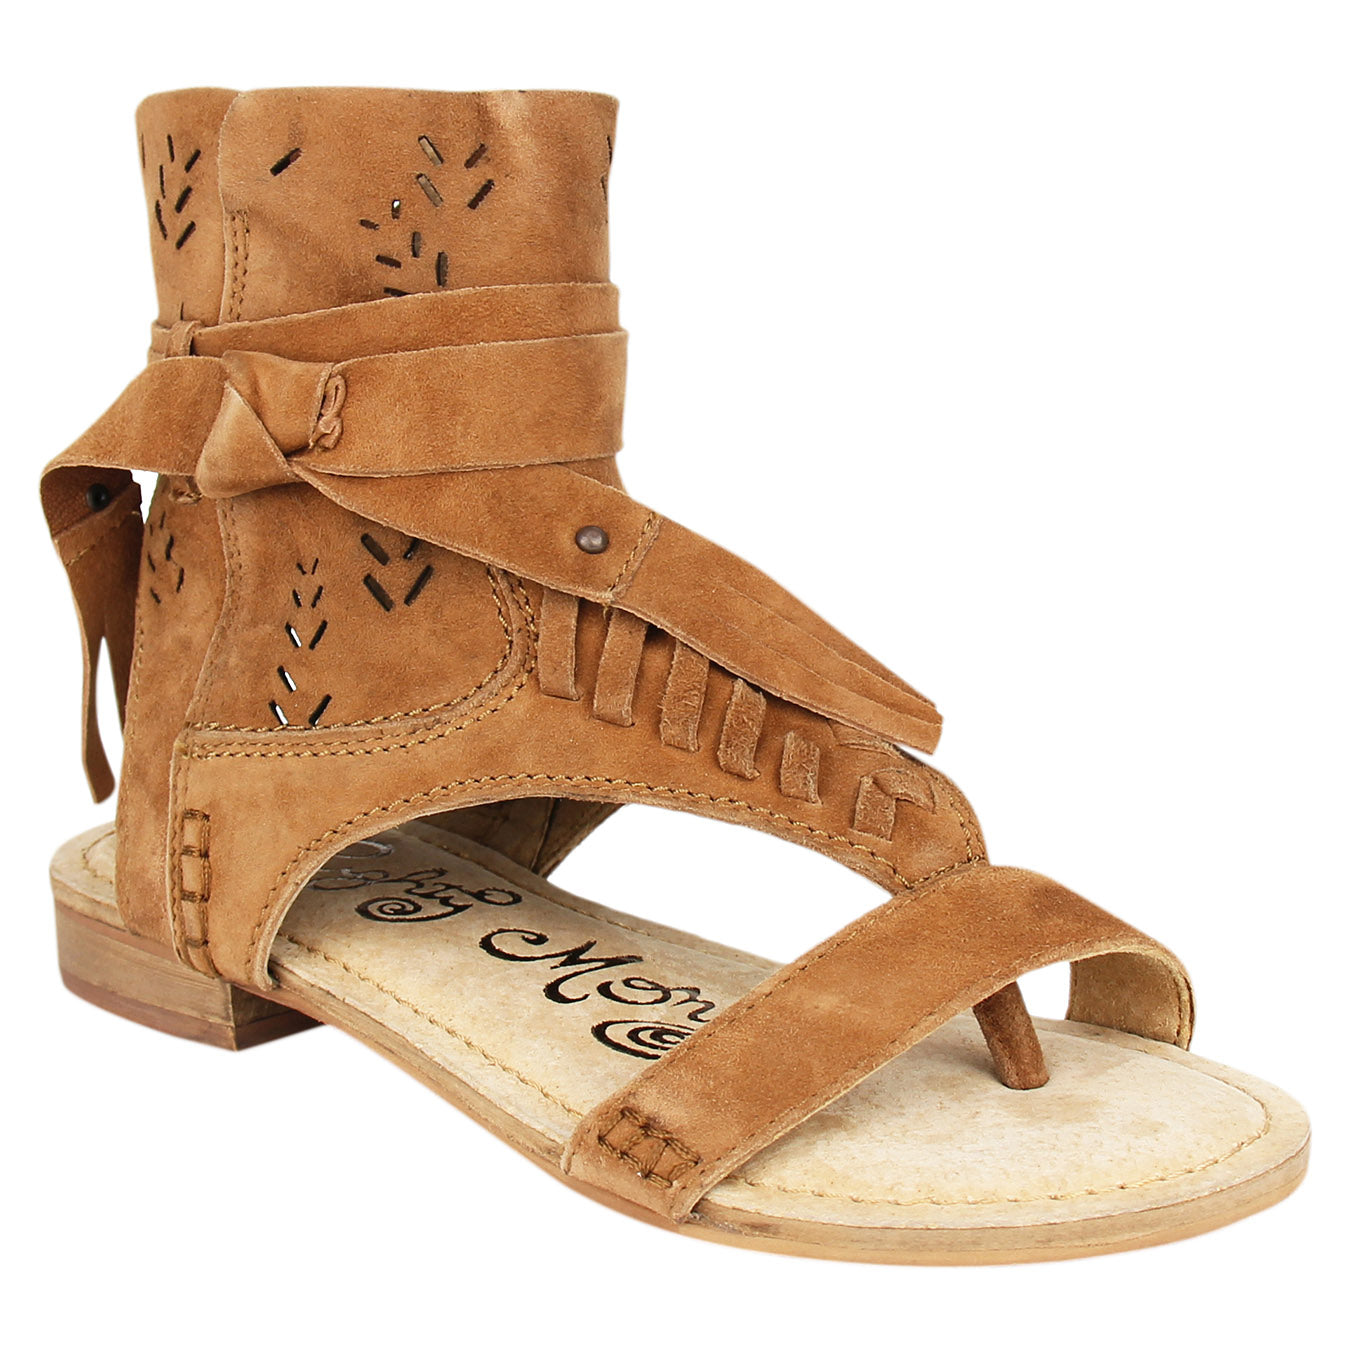 Naughty_Monkey_Sandal_tan_leather_Cochise